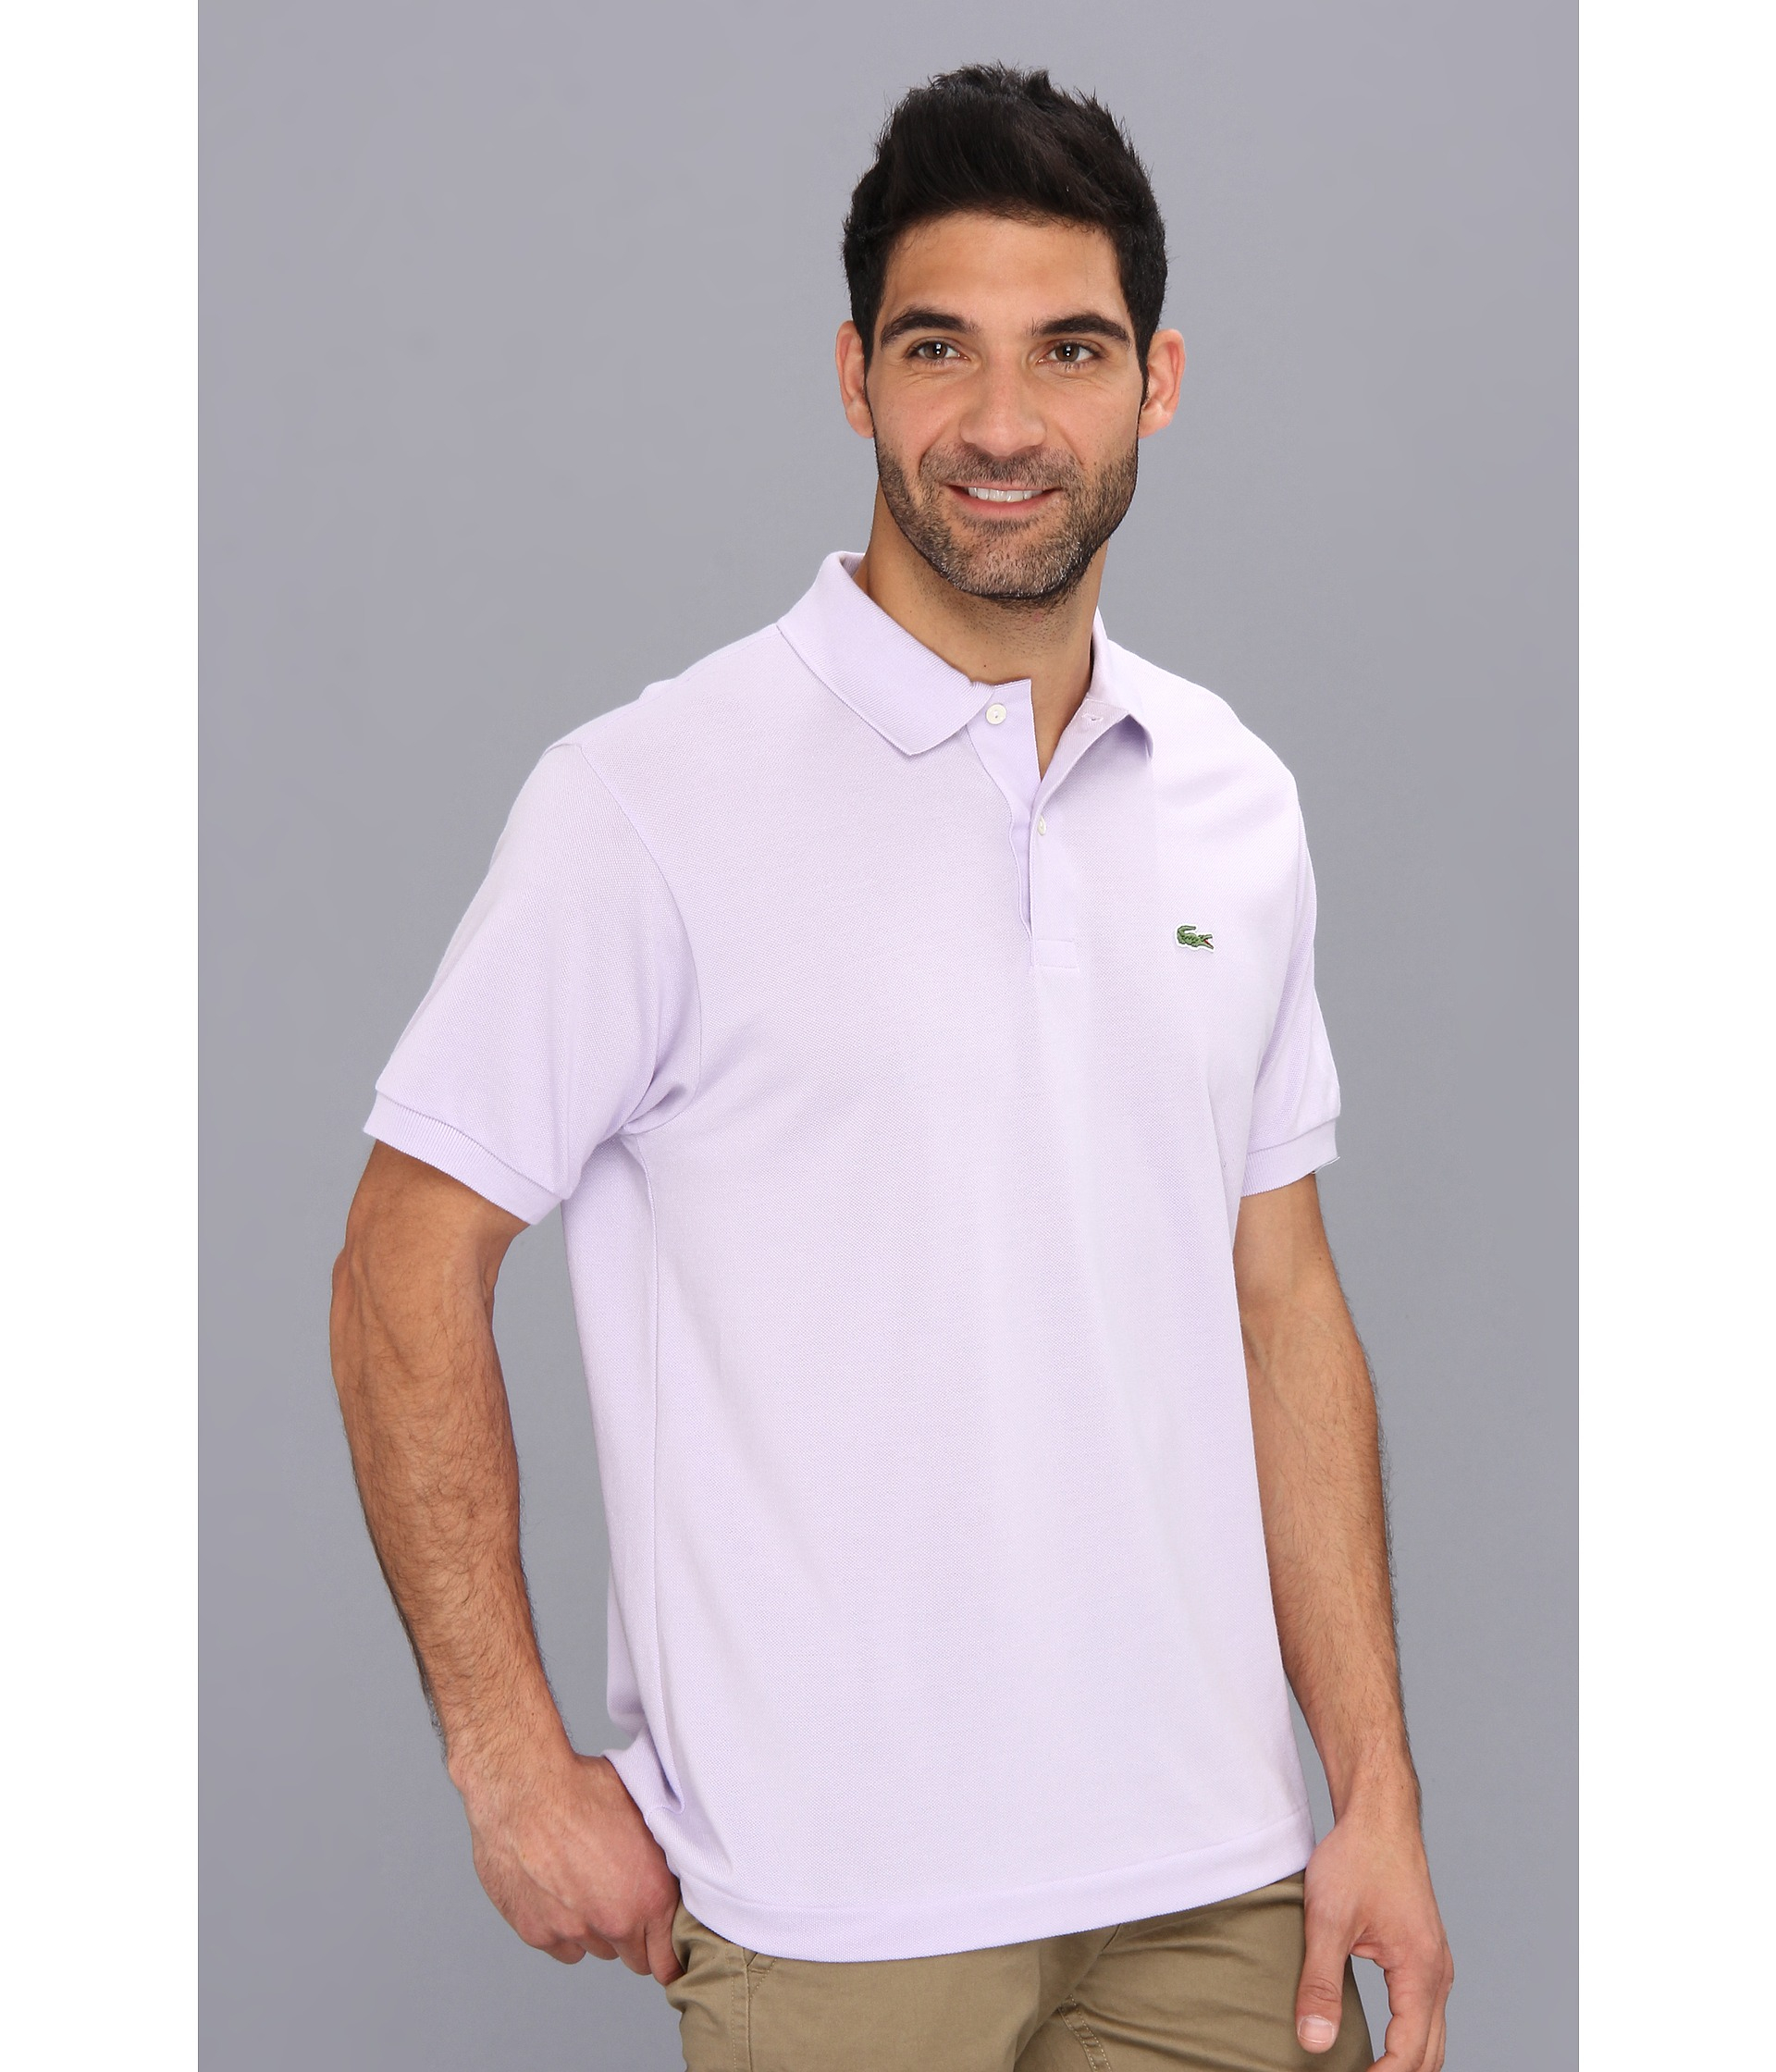 lacoste classic pique polo shirt in white for men iris. Black Bedroom Furniture Sets. Home Design Ideas